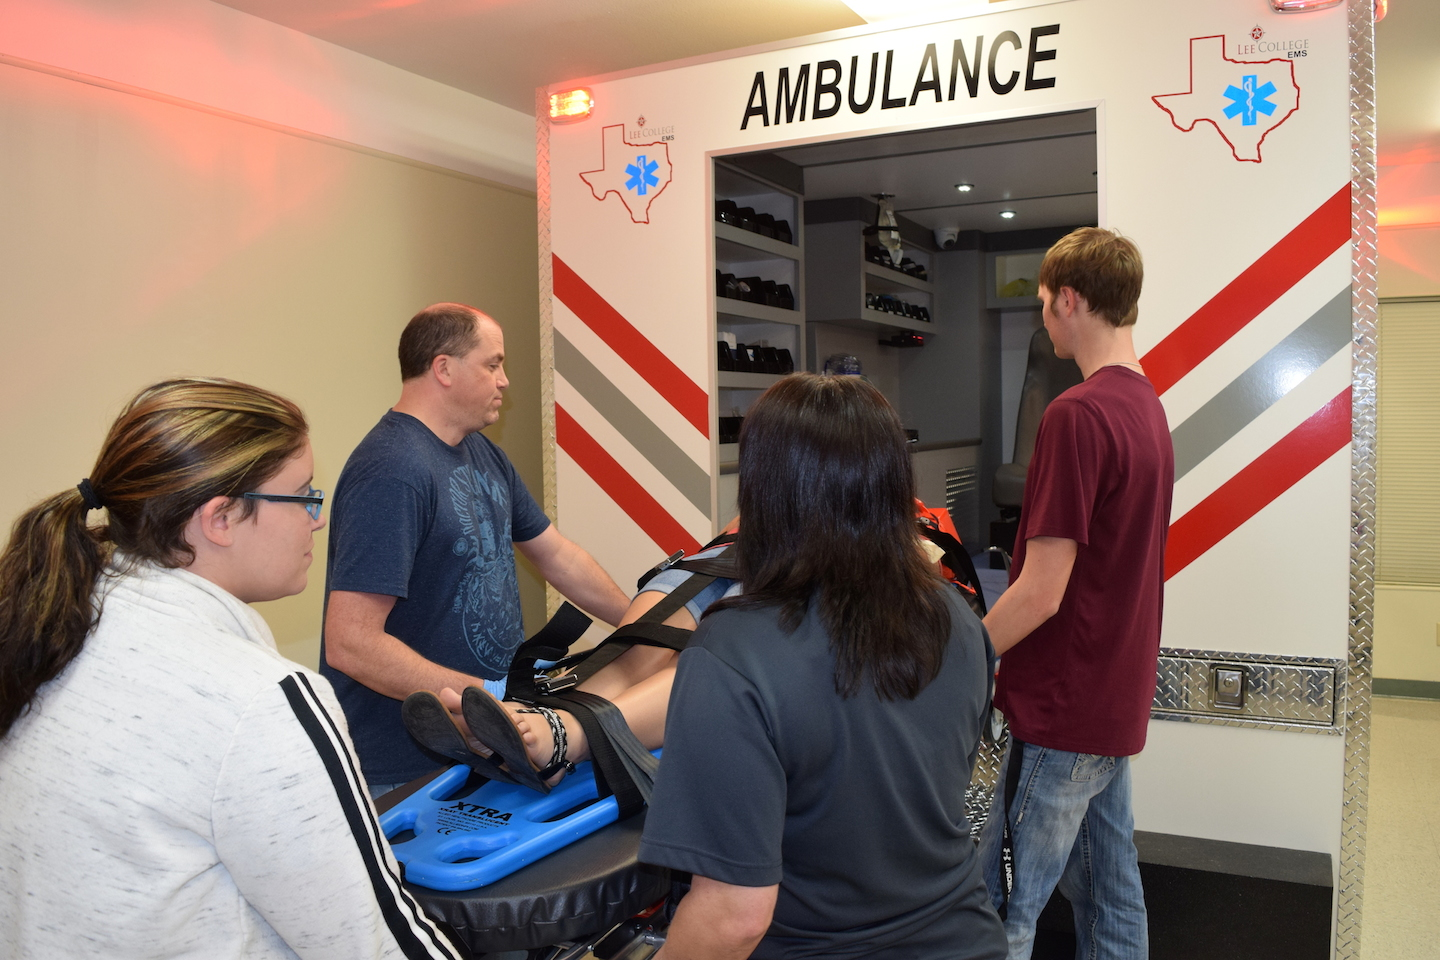 Lee Enrolling Students In Emt Courses Coming To Baytown In July